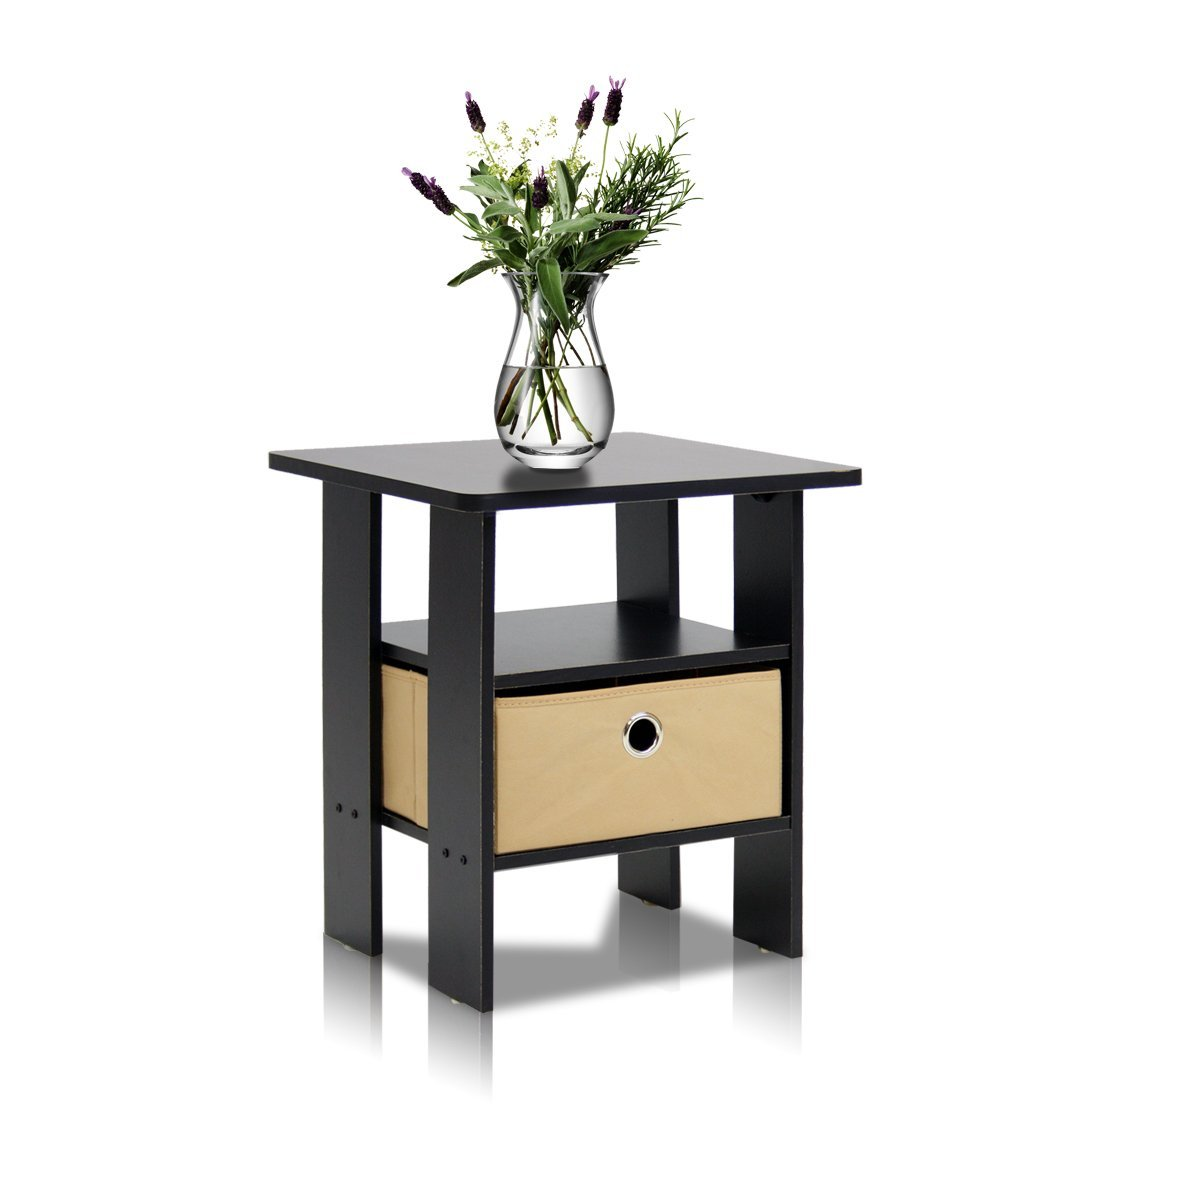 Furinno 11157EX/BR End Table Bedroom Night Stand w/Bin Drawer, Espresso/Brown by Furinno